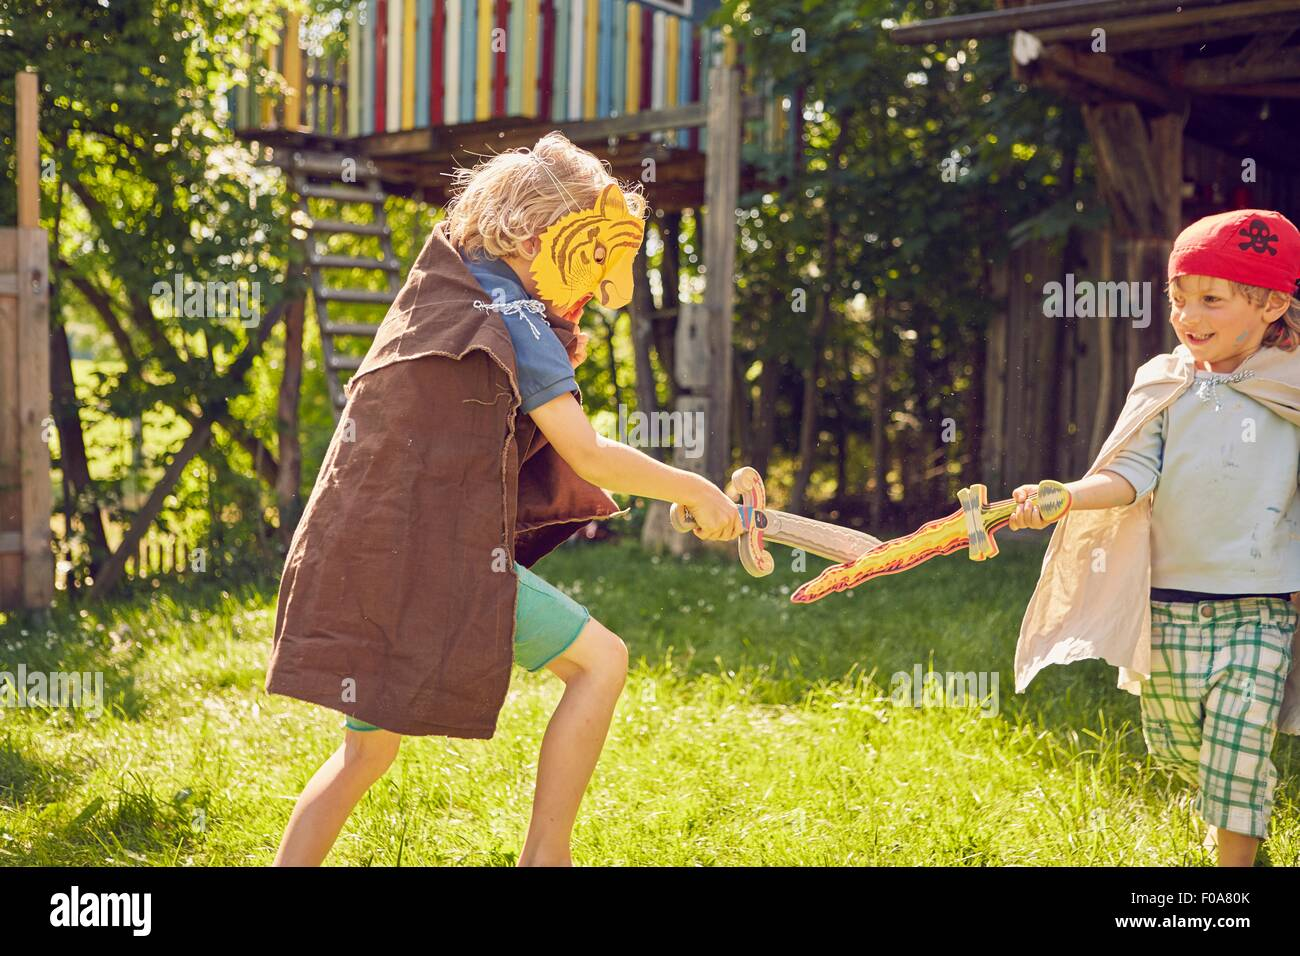 Two young brothers in garden, wearing costumes and playing with pretend swords - Stock Image